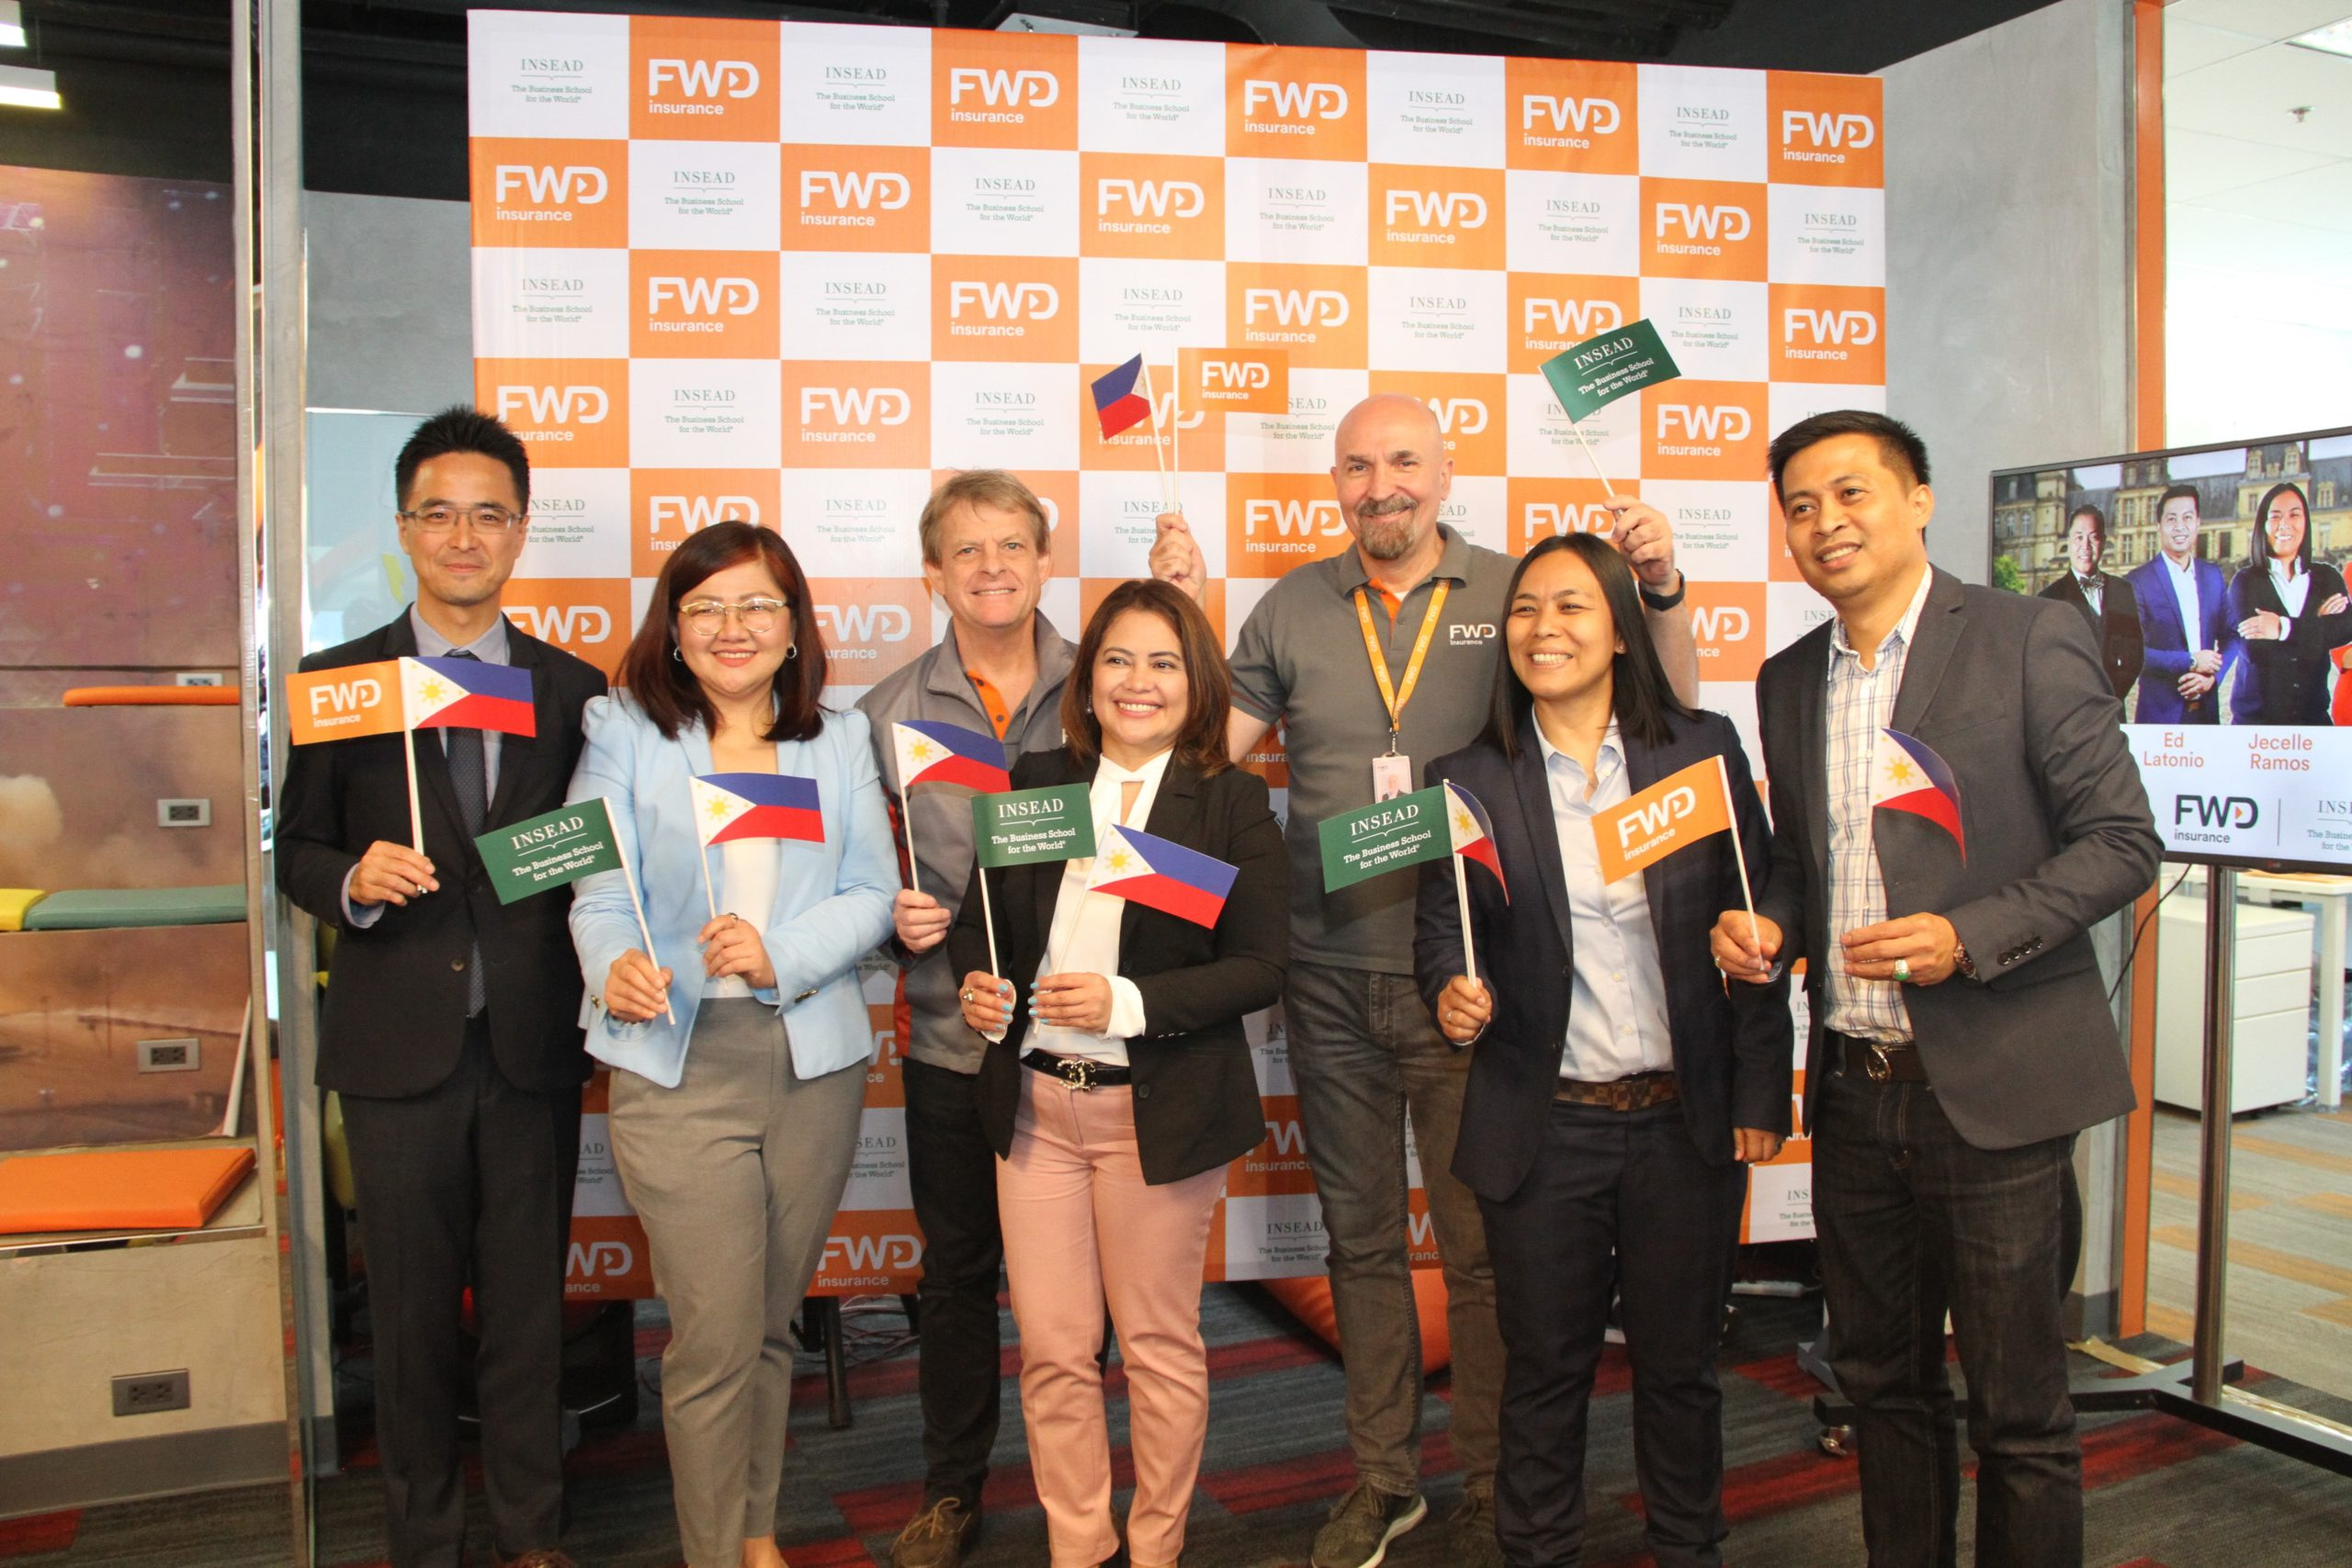 Pan-Asian insurer FWD partners with INSEAD to launch FWD ELITE Signature Program